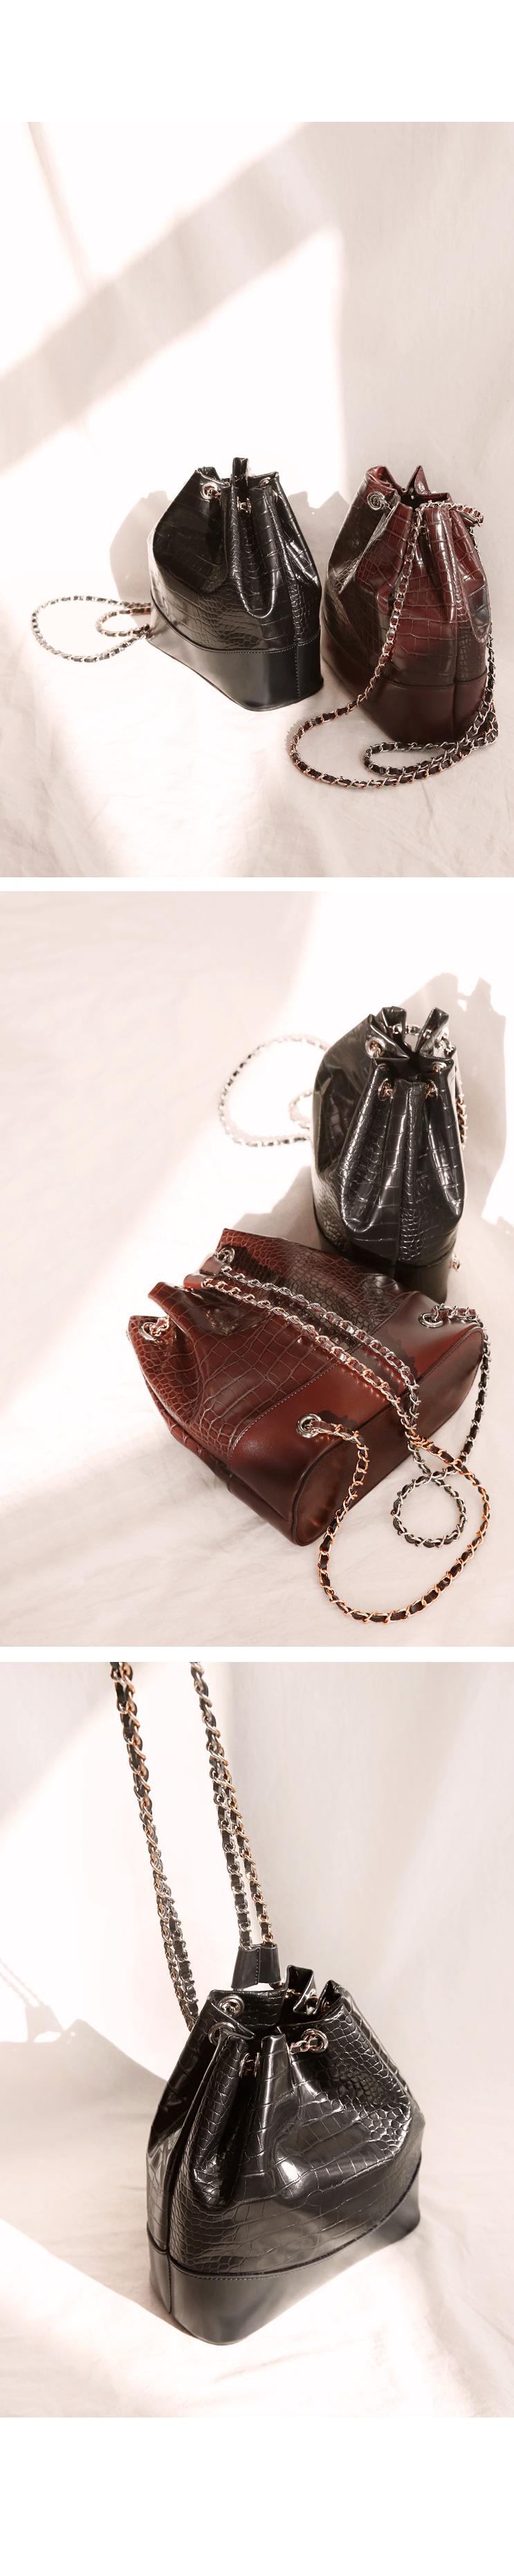 CROCODILE LEATHER CHAIN BACKPACK